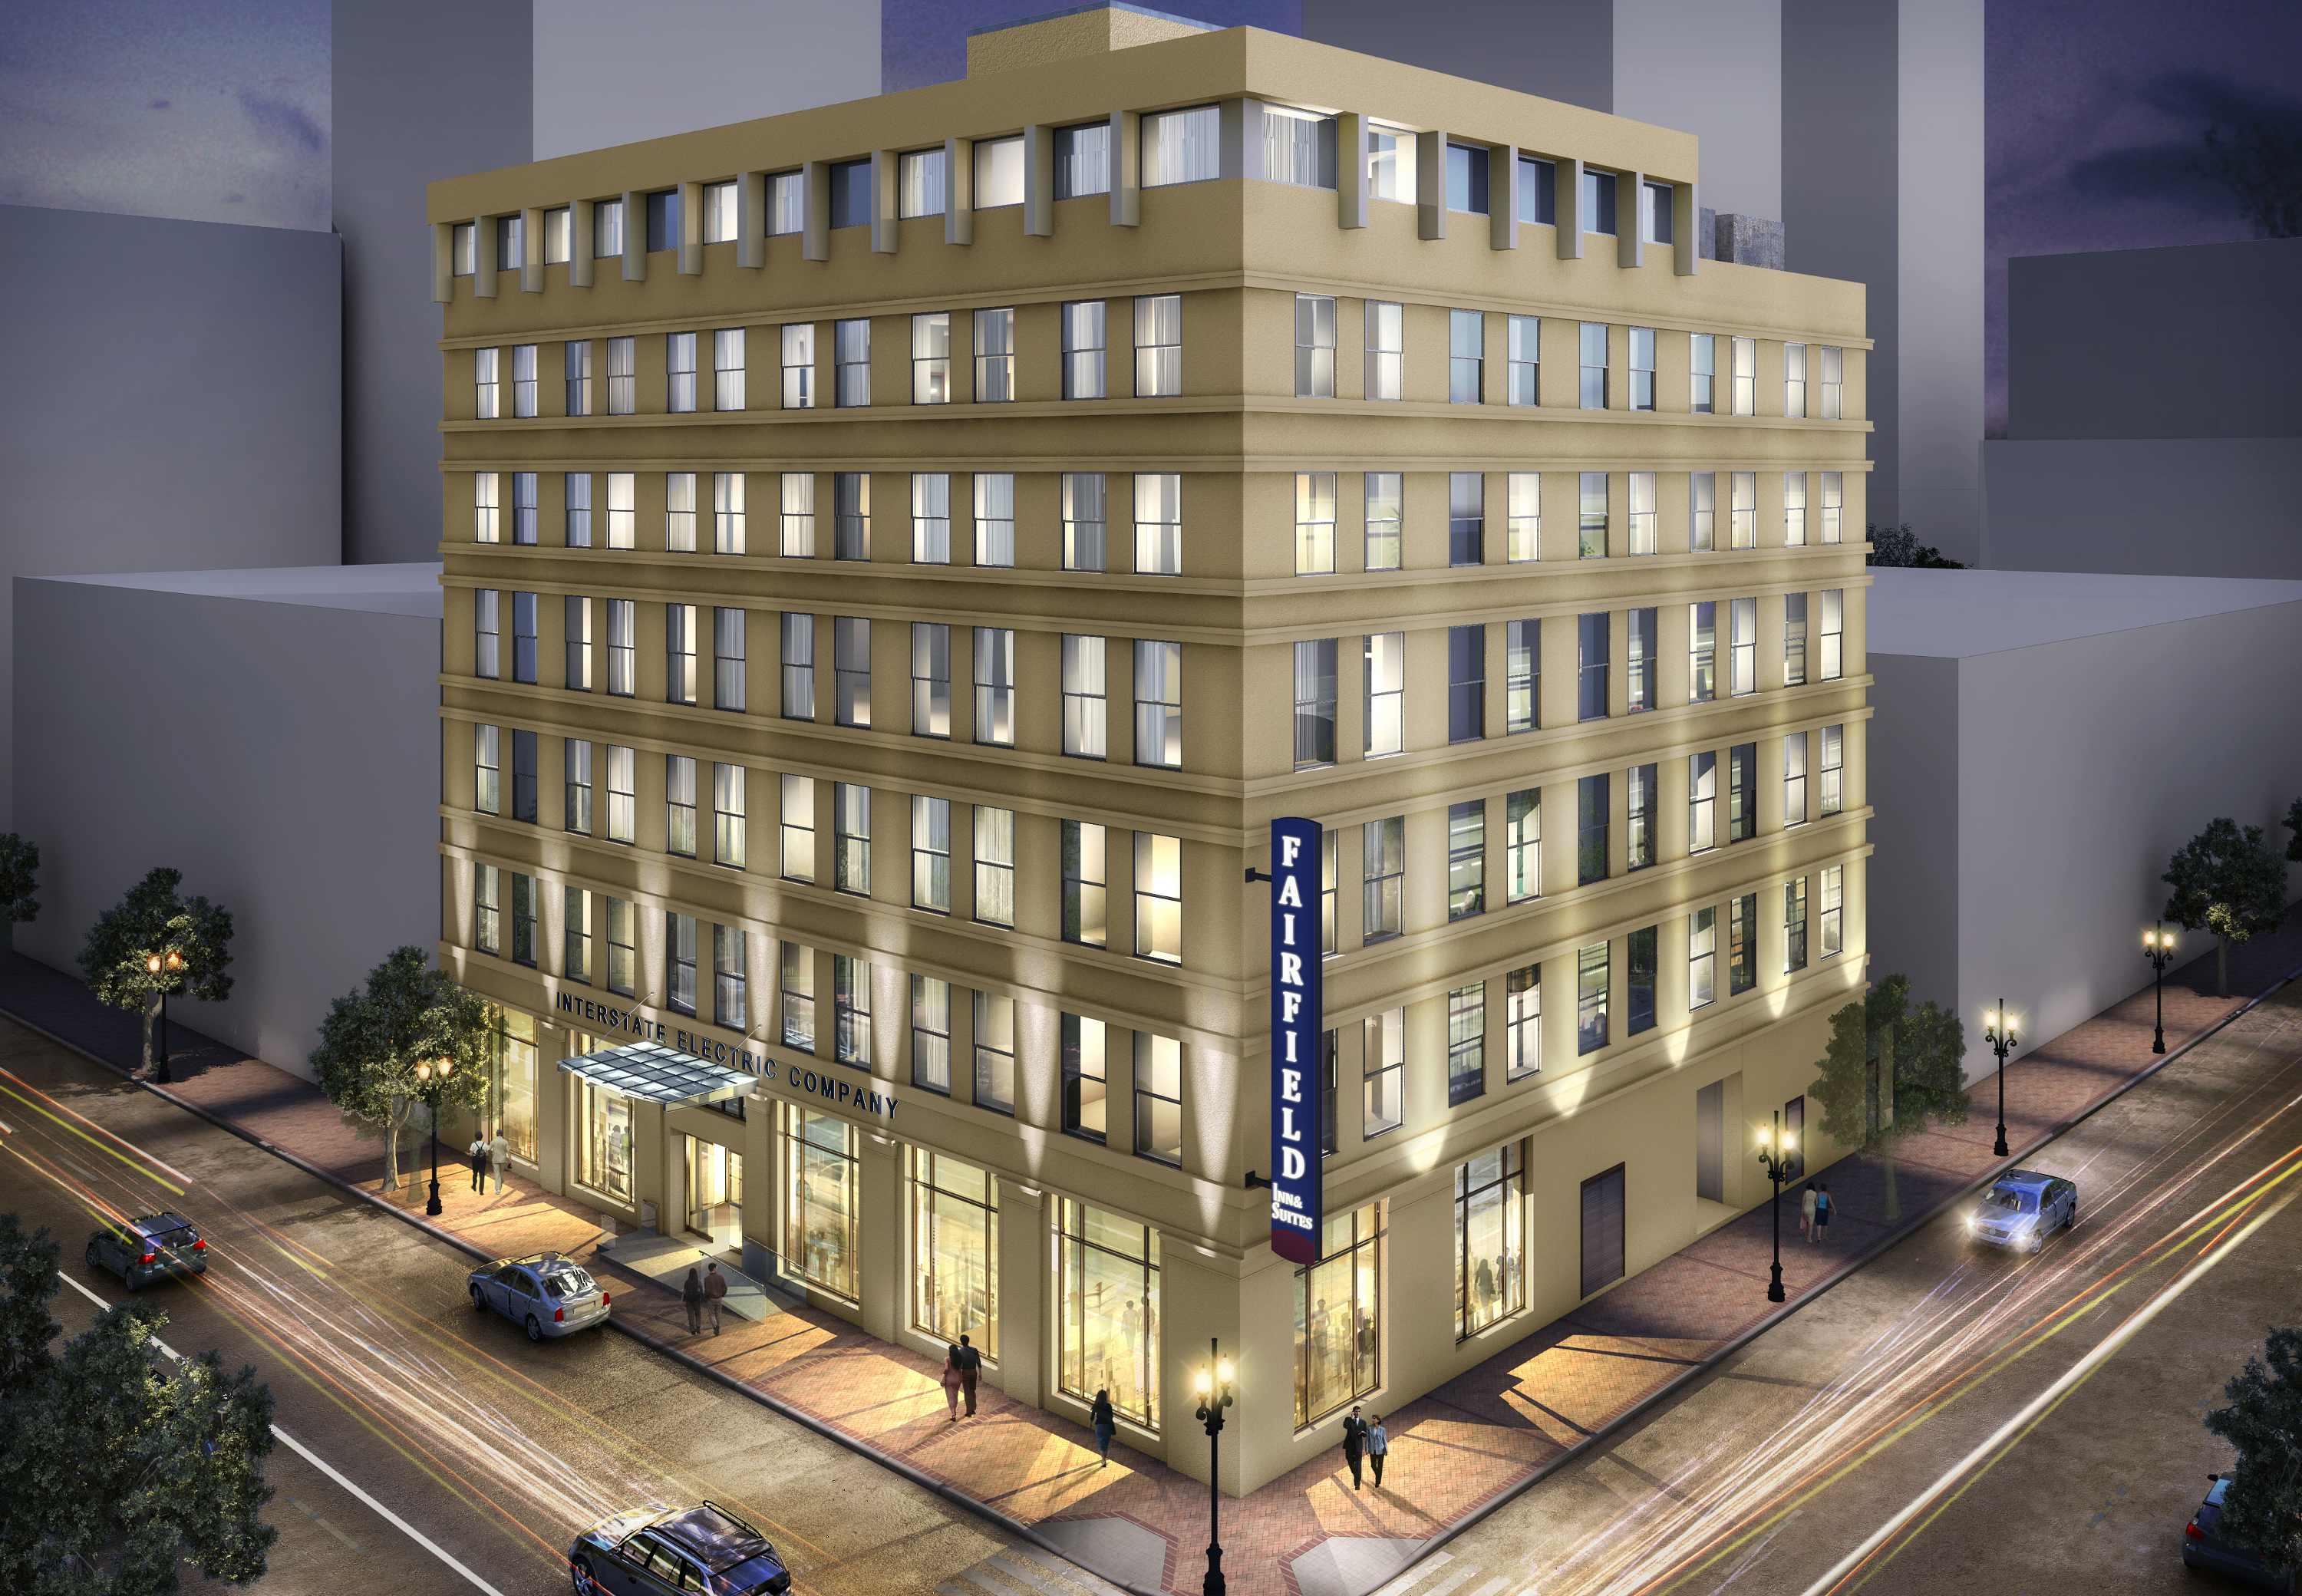 Fairfield Inn & Suites by Marriott New Orleans Downtown/French Quarter Area image 0